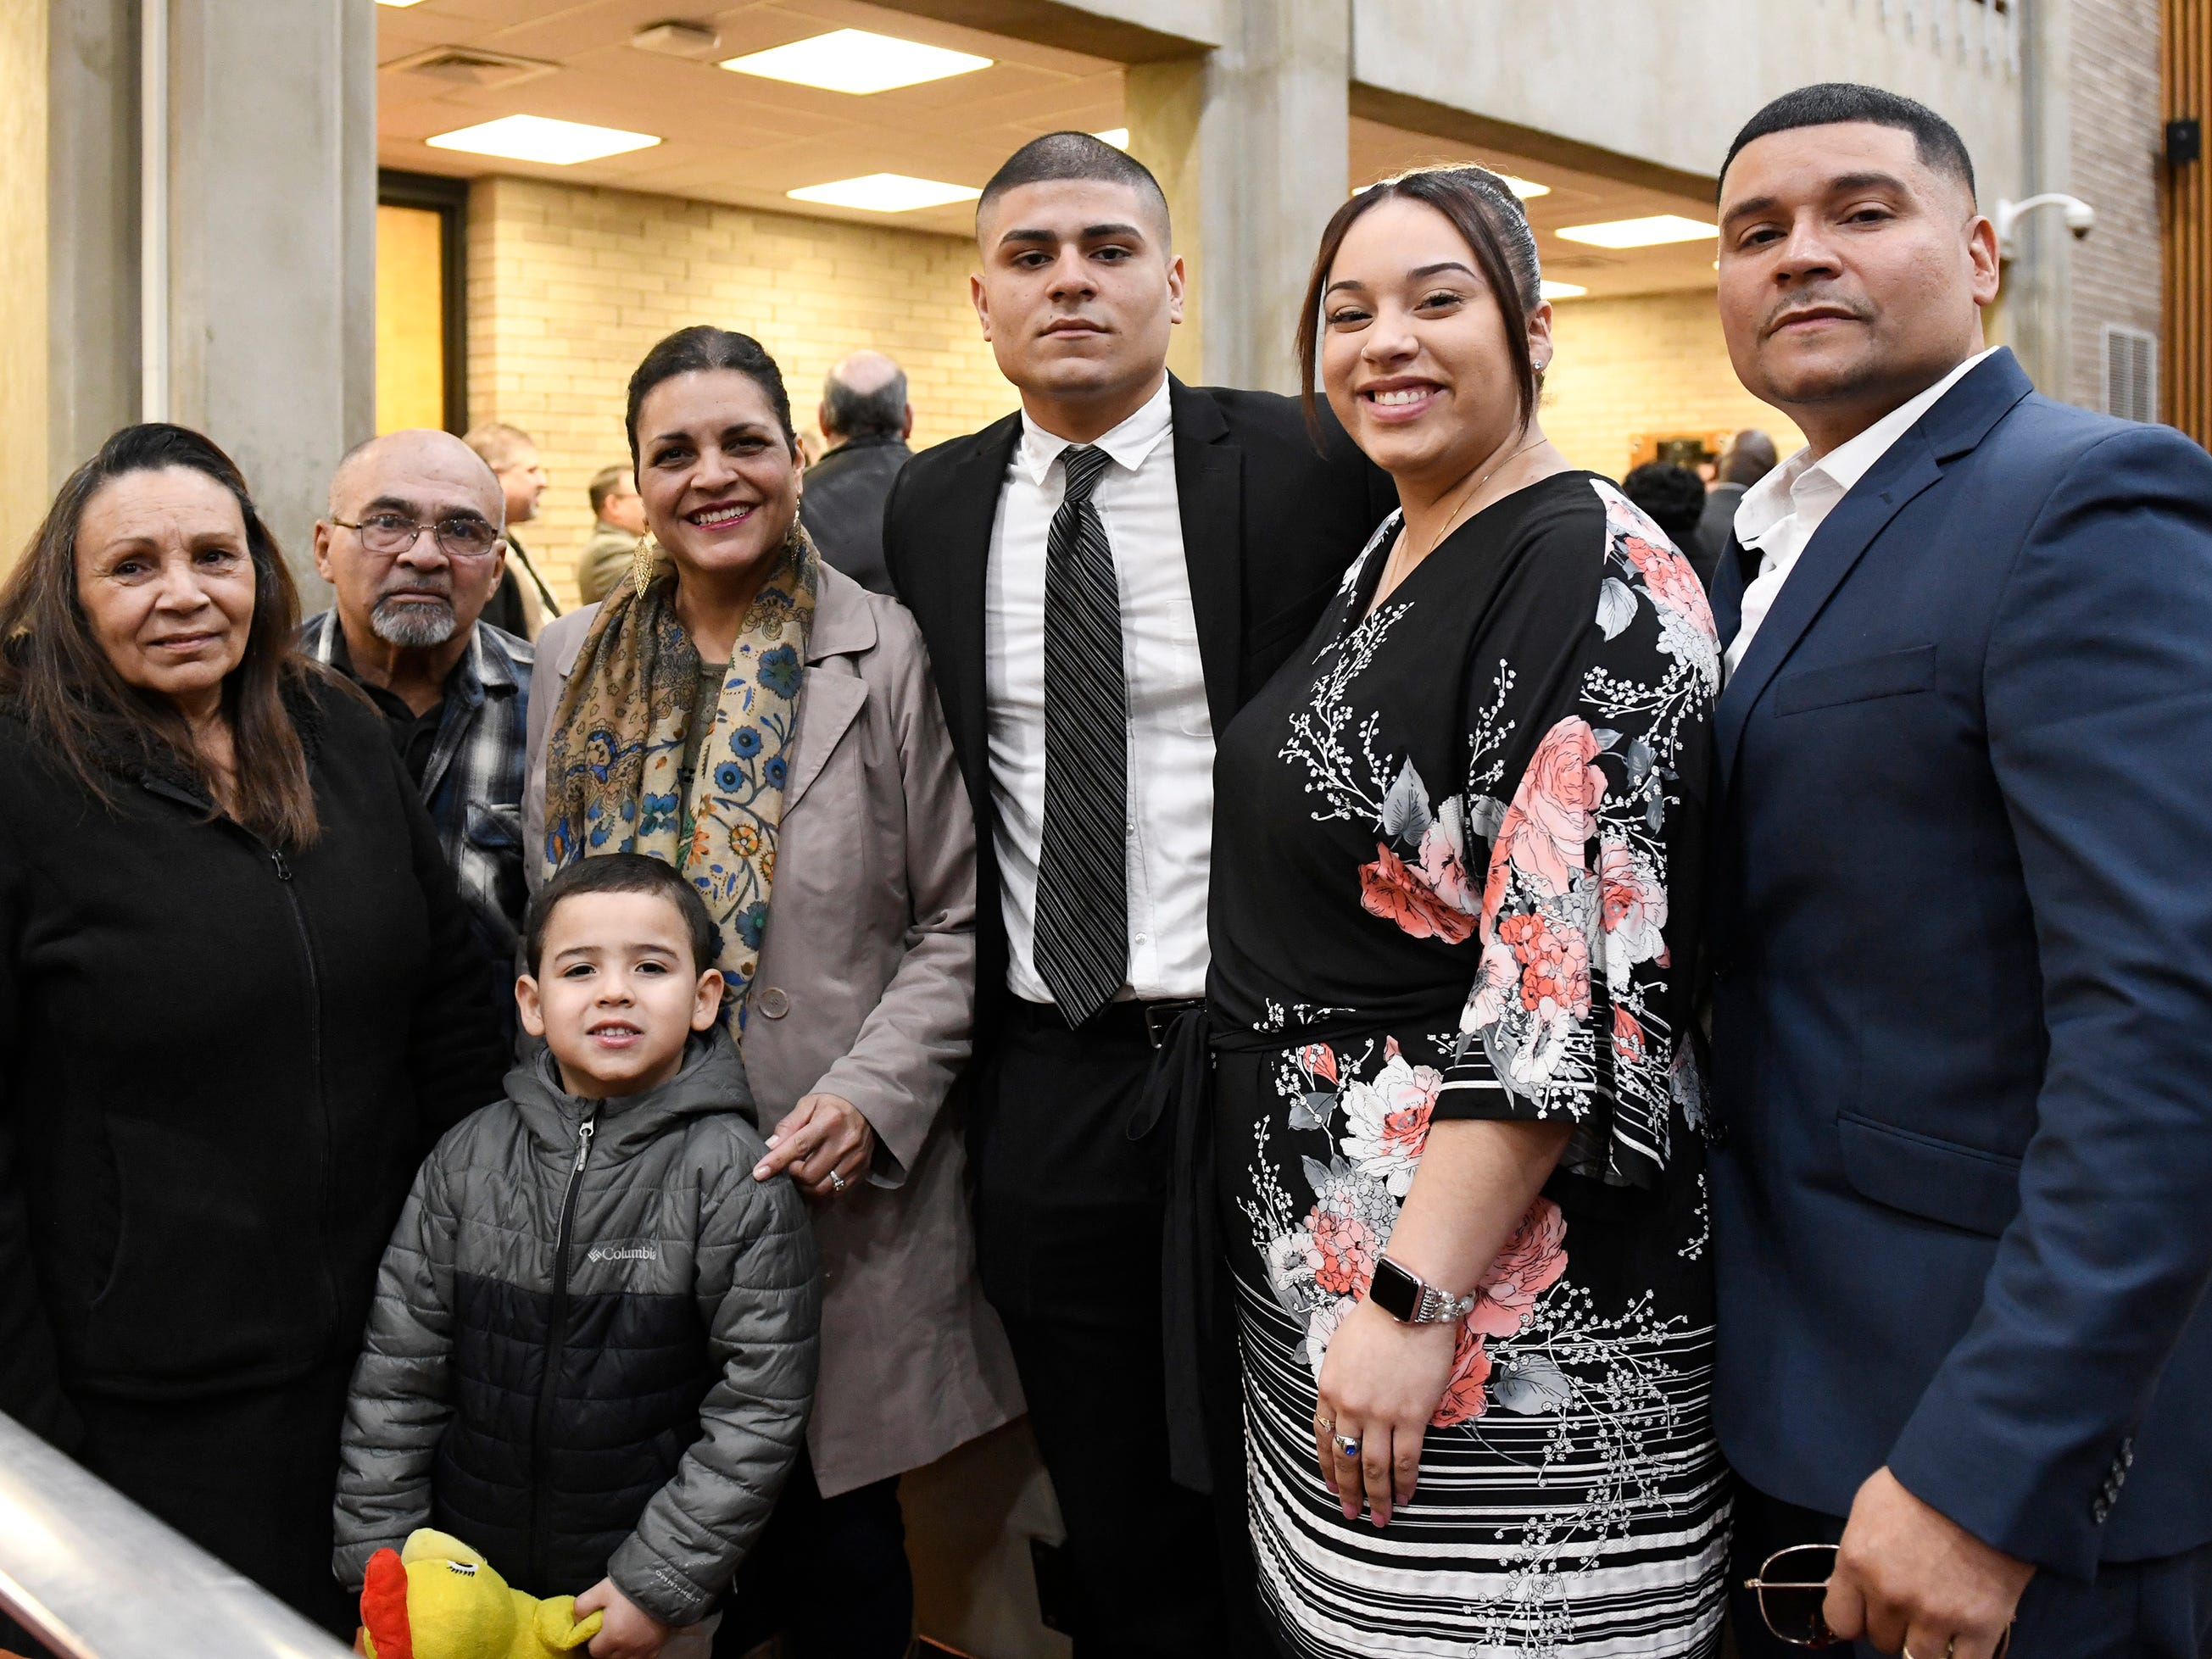 Isaiah Rosa (center) stands with his family after being sworn in as a police officer by Mayor Anthony Fanucci at Vineland City Hall on Wednesday, Feb.27, 2019.